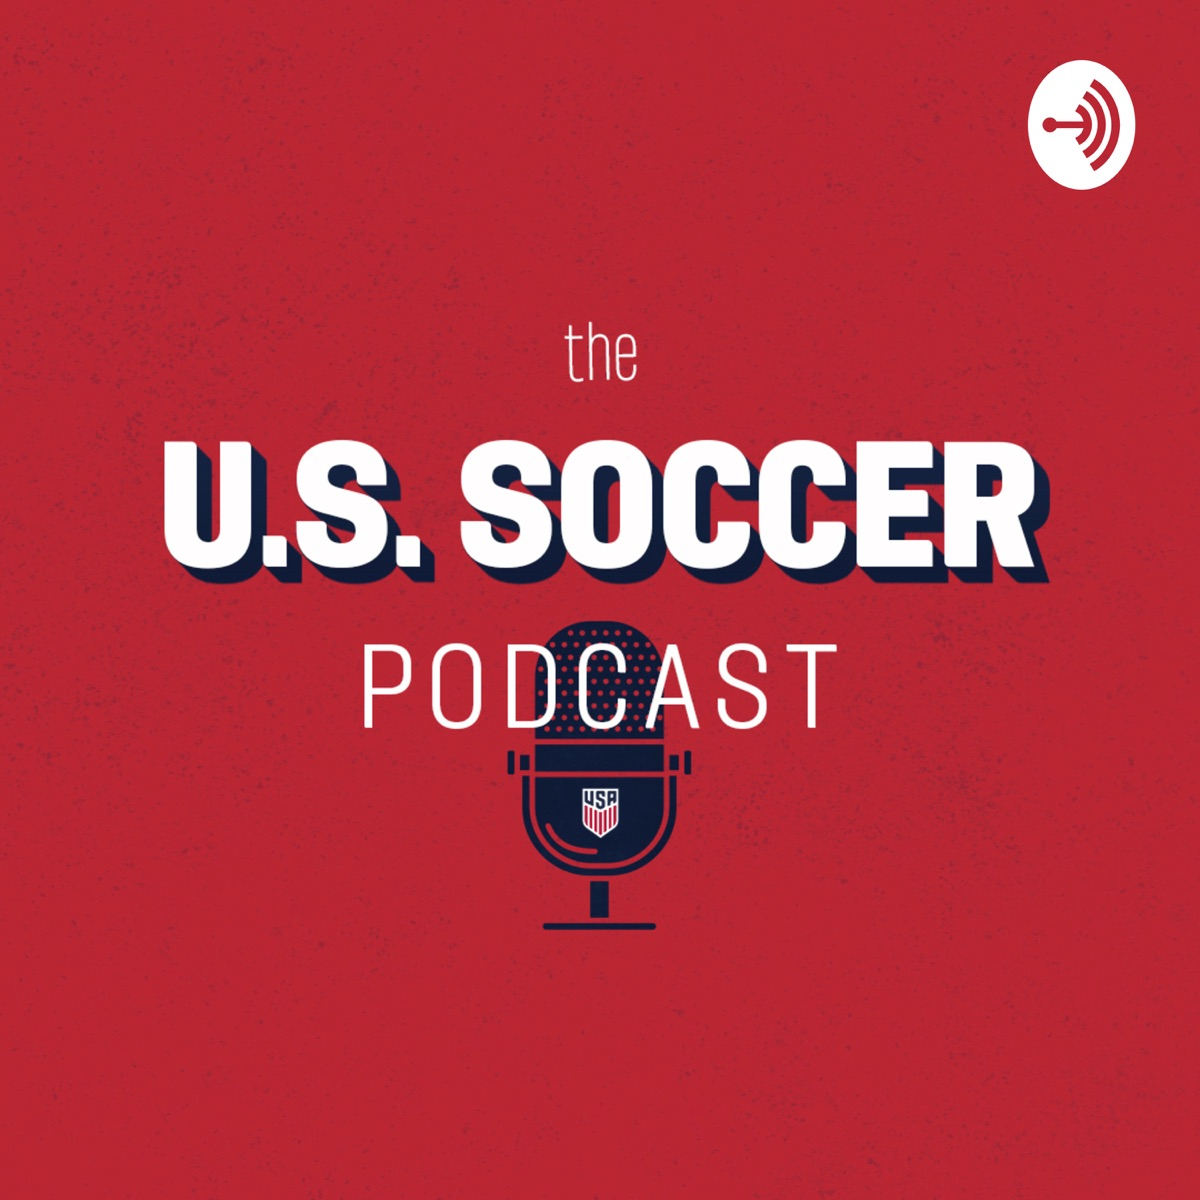 The U.S. Soccer Podcast